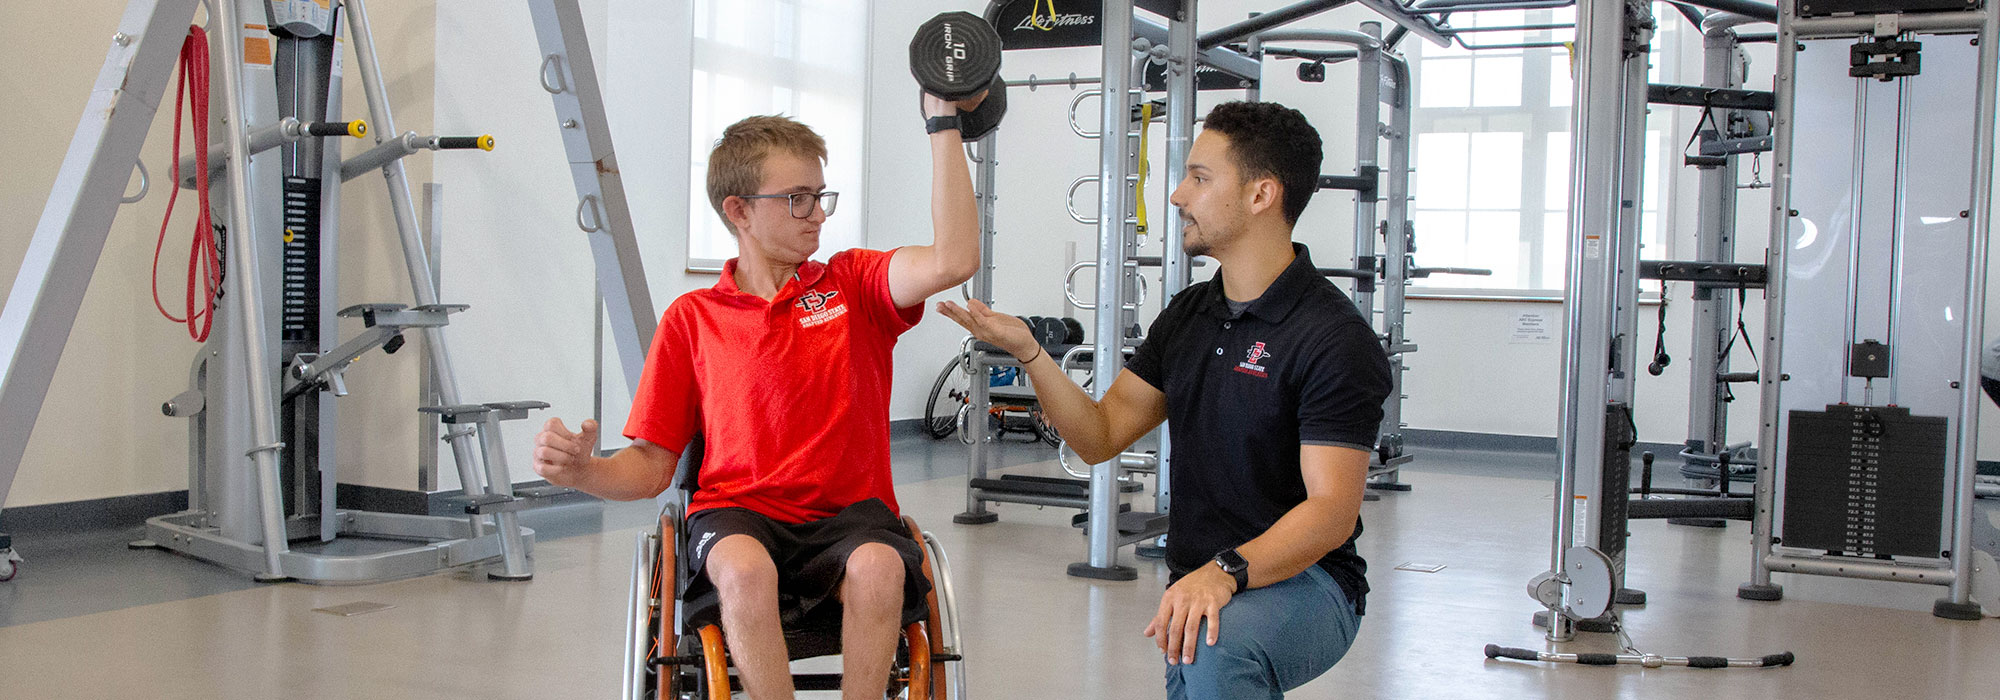 Adaptive Athletics - Young man in weelchair instructed technique on working out with a dumbell